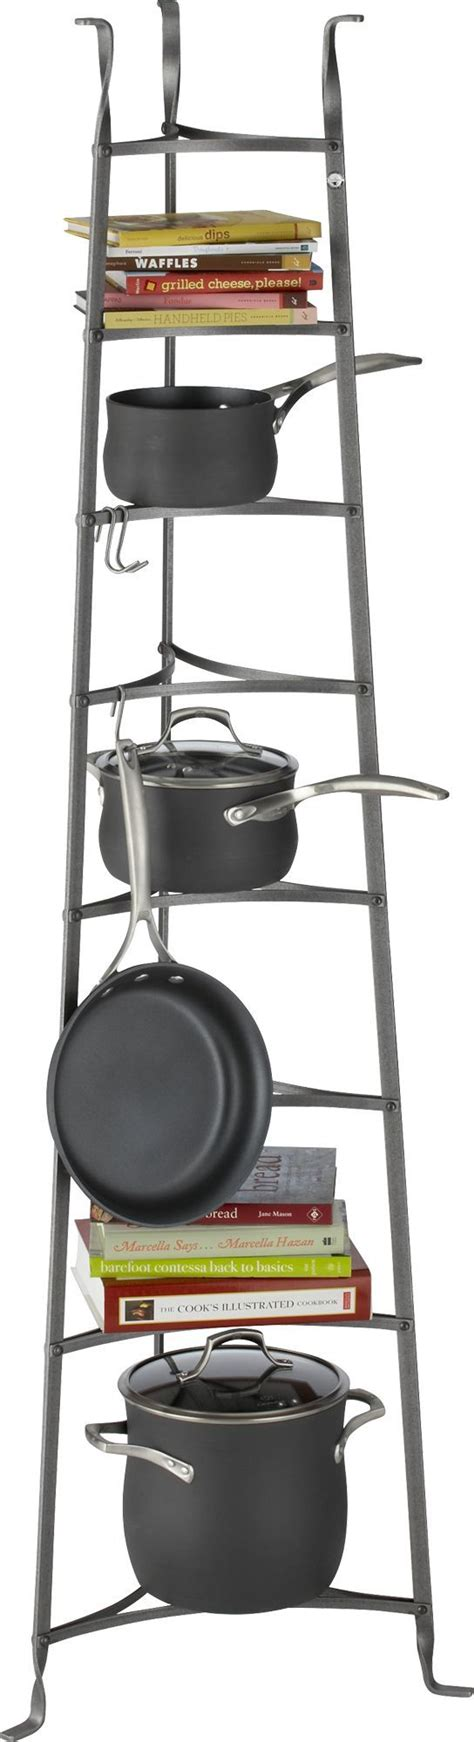 Standing Pot Rack enclume 174 standing 8 tier pot rack